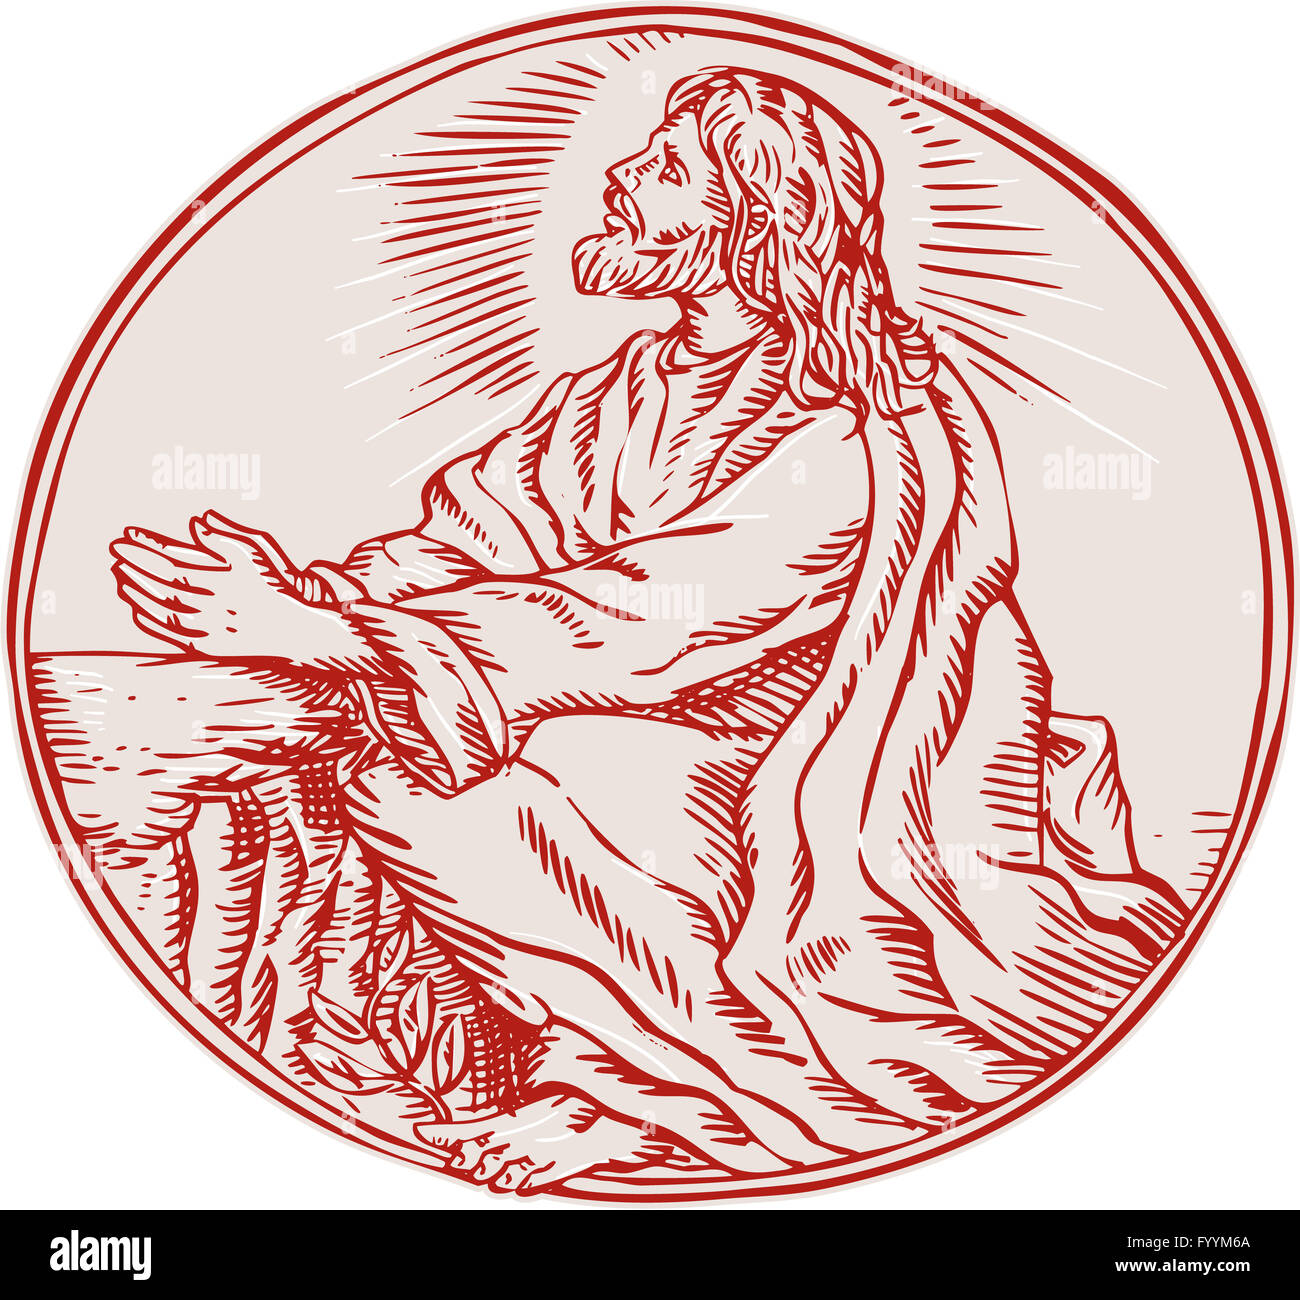 Woodcut Of Christ Stock Photos & Woodcut Of Christ Stock Images - Alamy